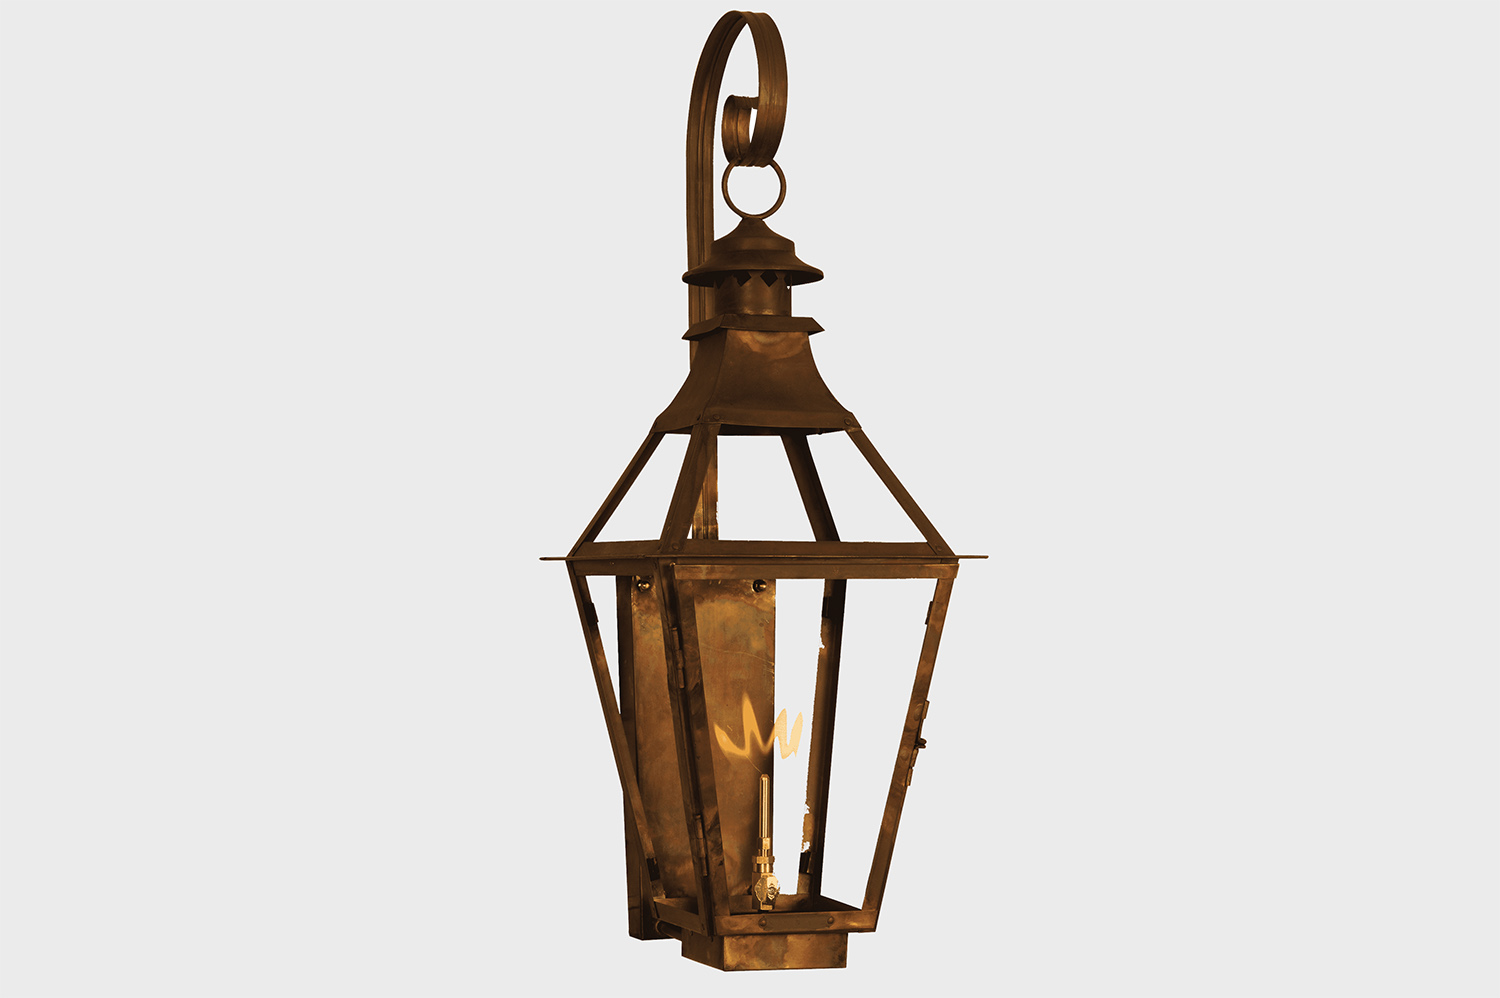 copper hanging gas light